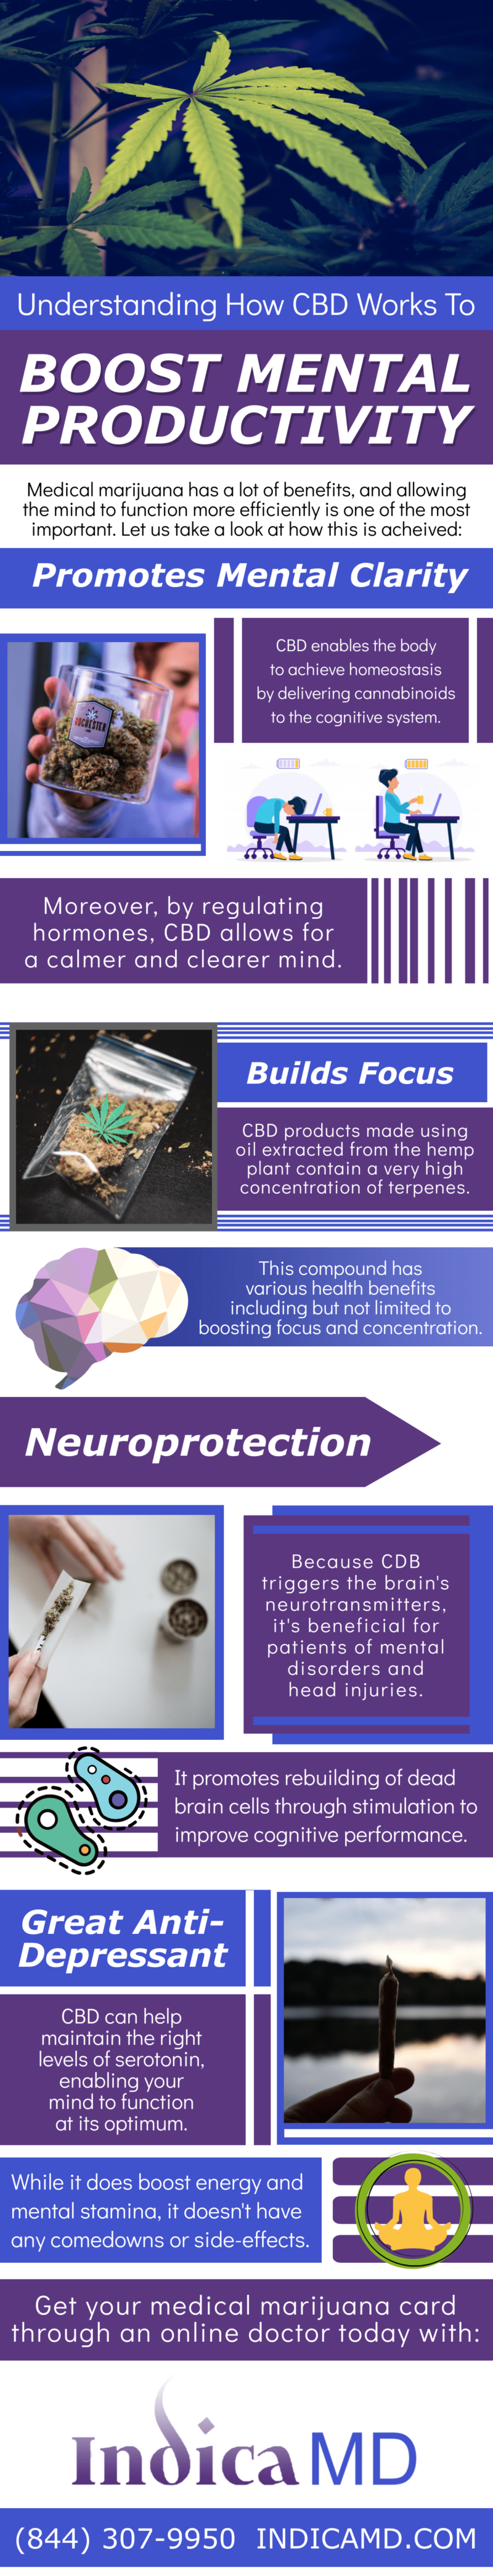 Understanding How CBD Works To Boost Mental Productivity